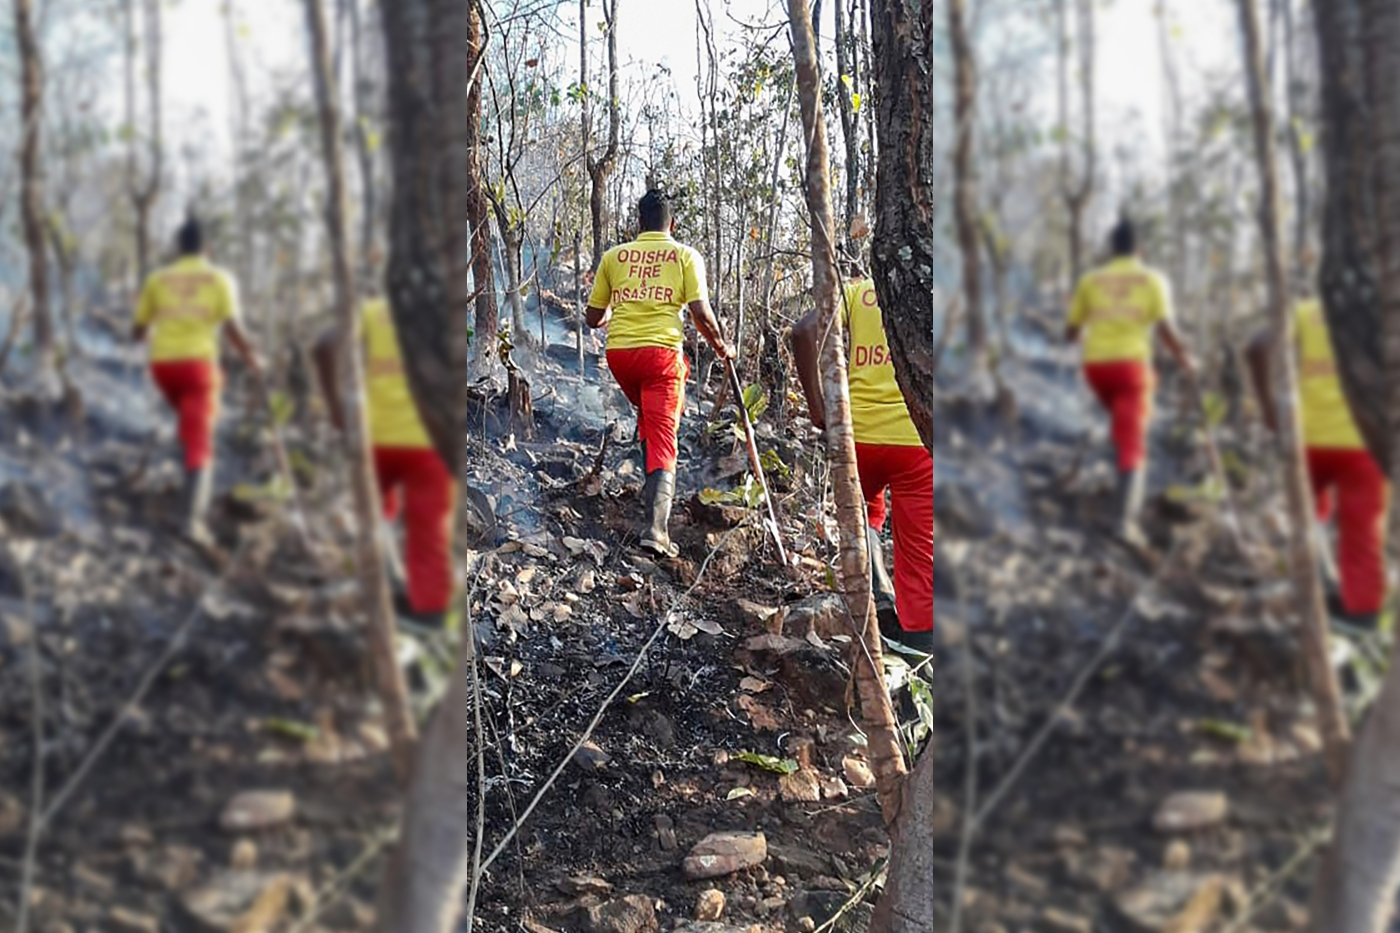 Wildfire Ravages Similipal, Asia's Second Largest Biosphere Reserve – The Wire Science